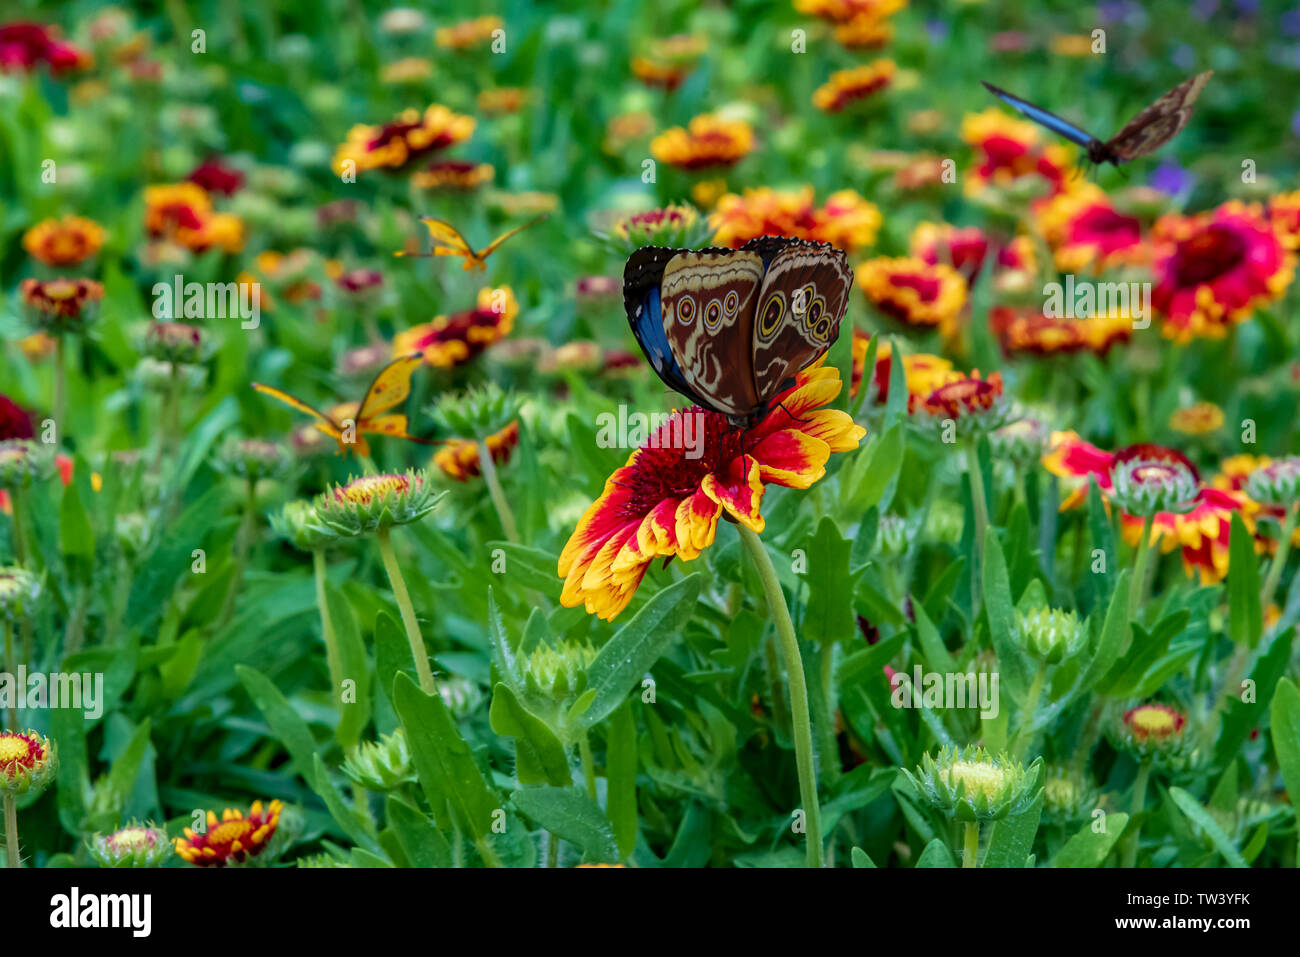 Butterflies On Colorful Red And Yellow Flowers In A Lush Green